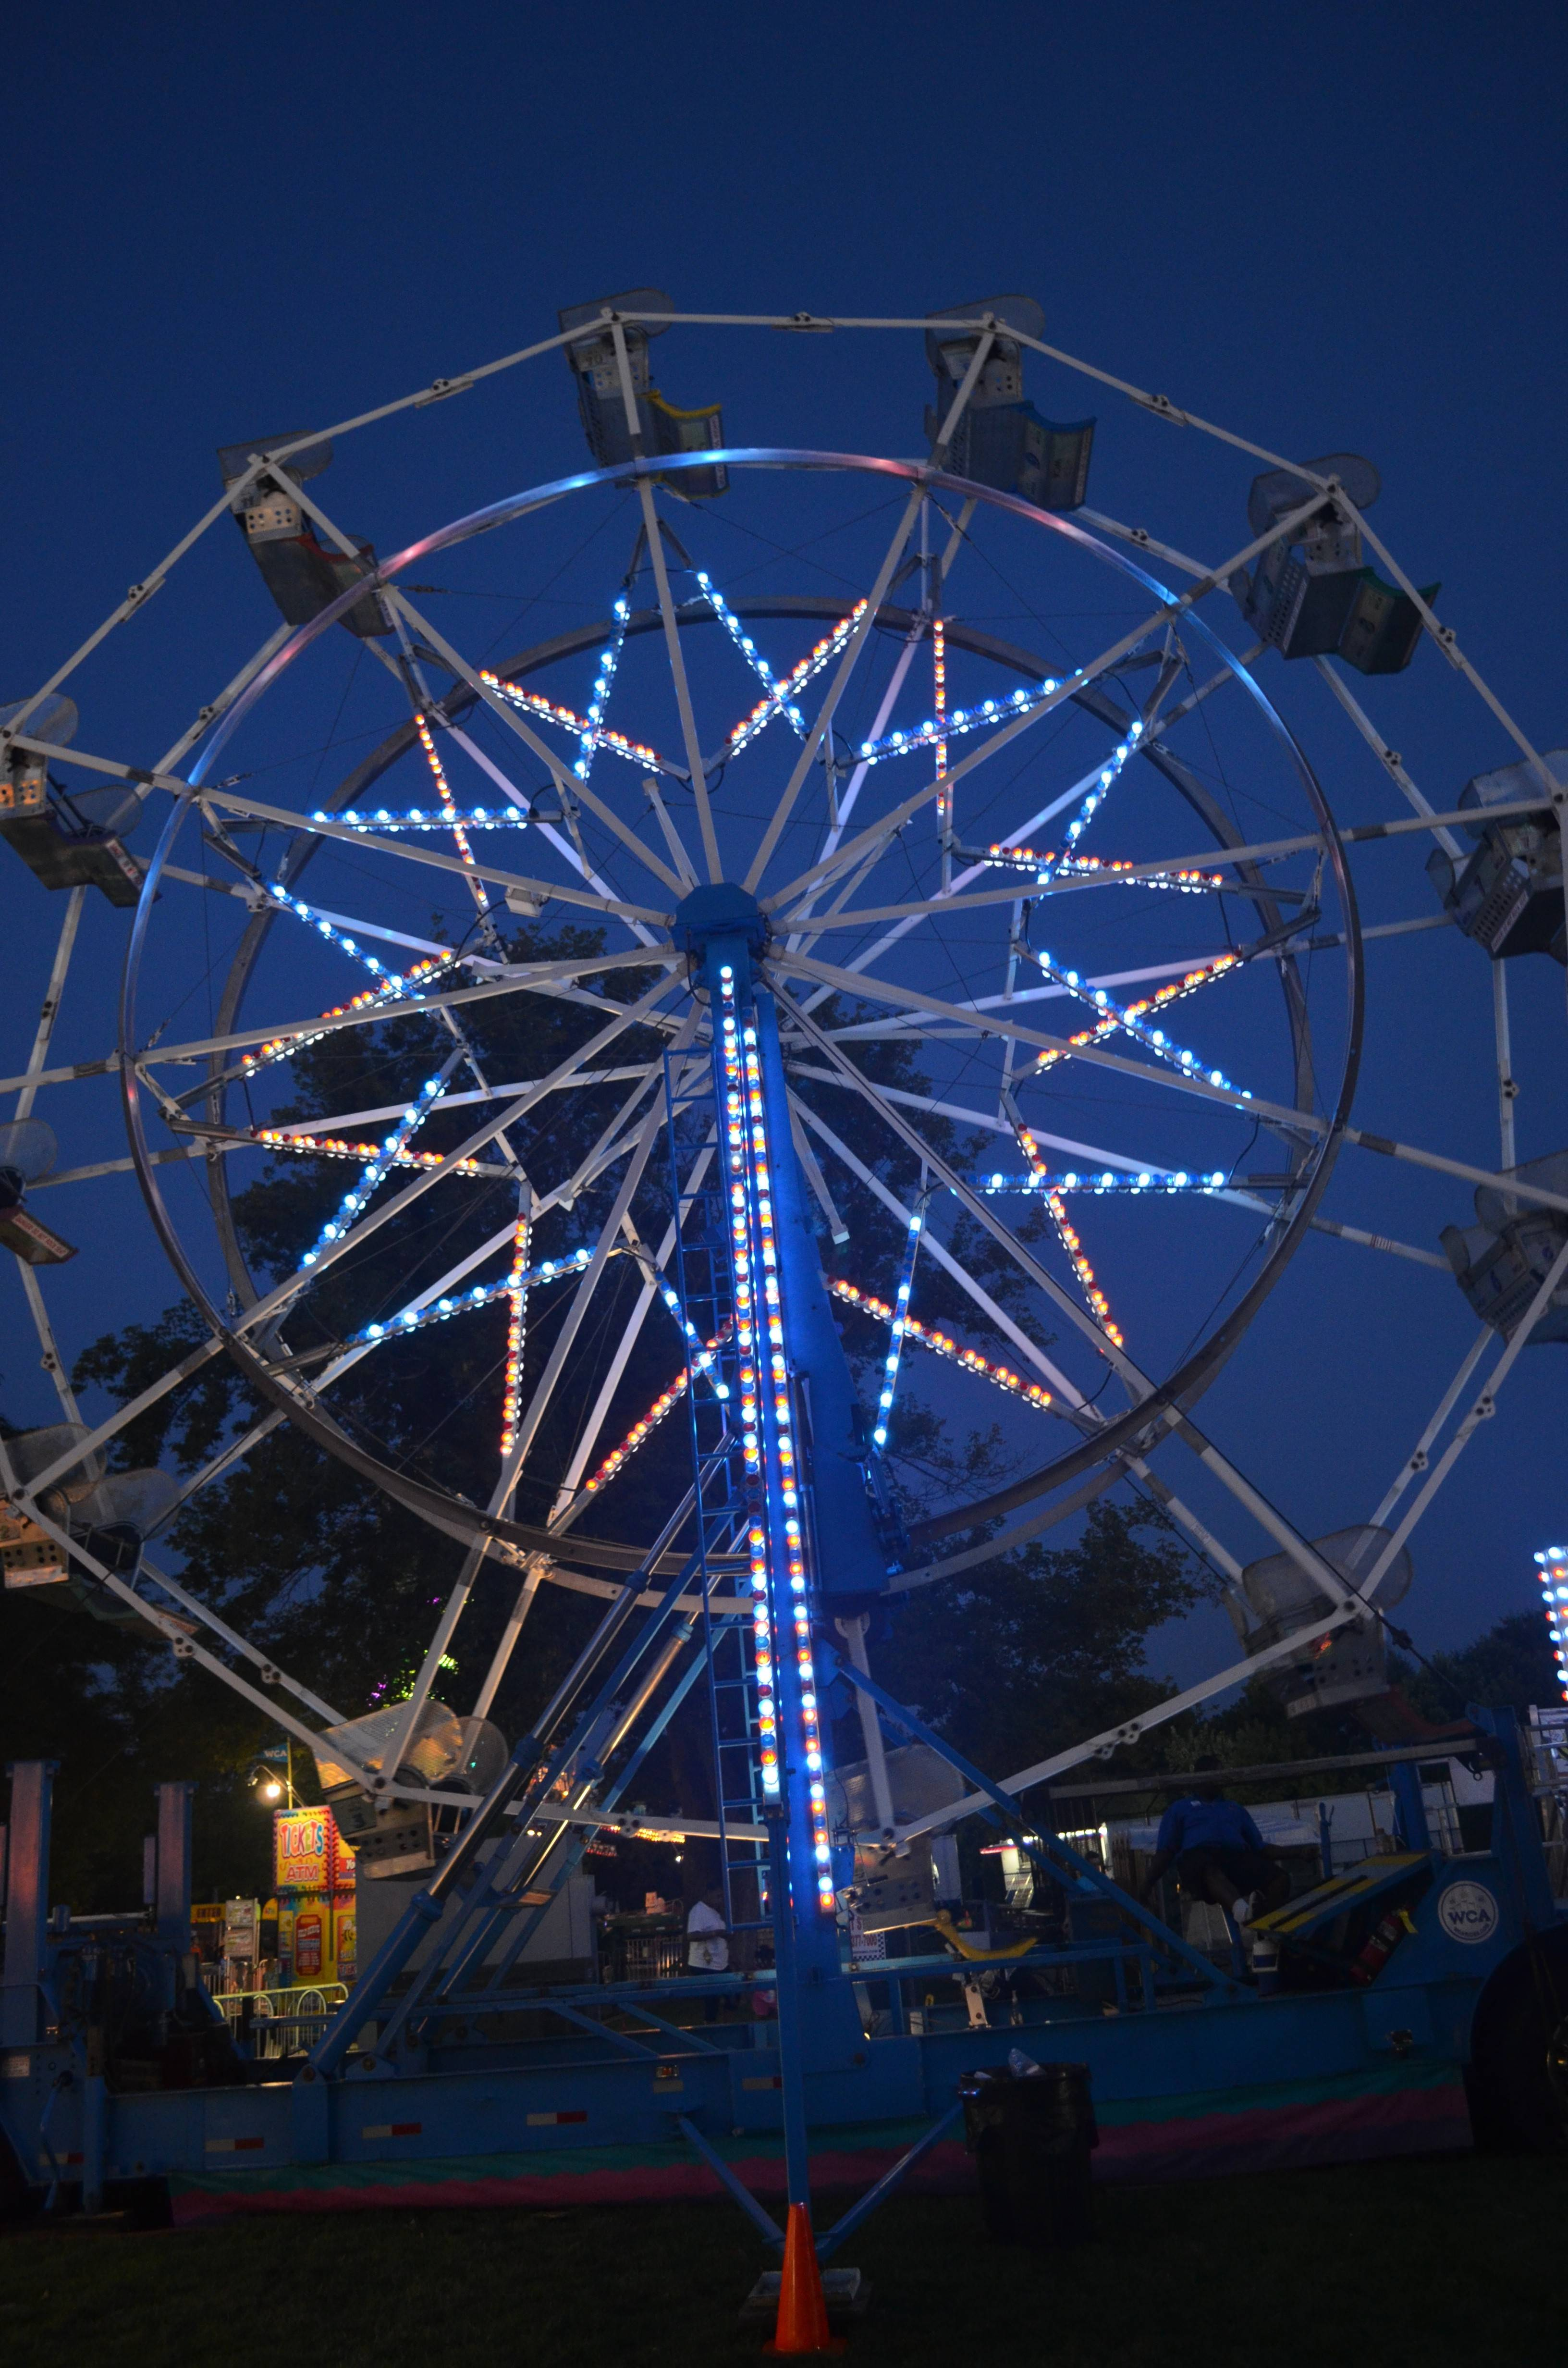 Carnival rides are just one of the attractions at Bartlett Heritage Days from Friday, Sept. 5, through Sunday, Sept. 7.